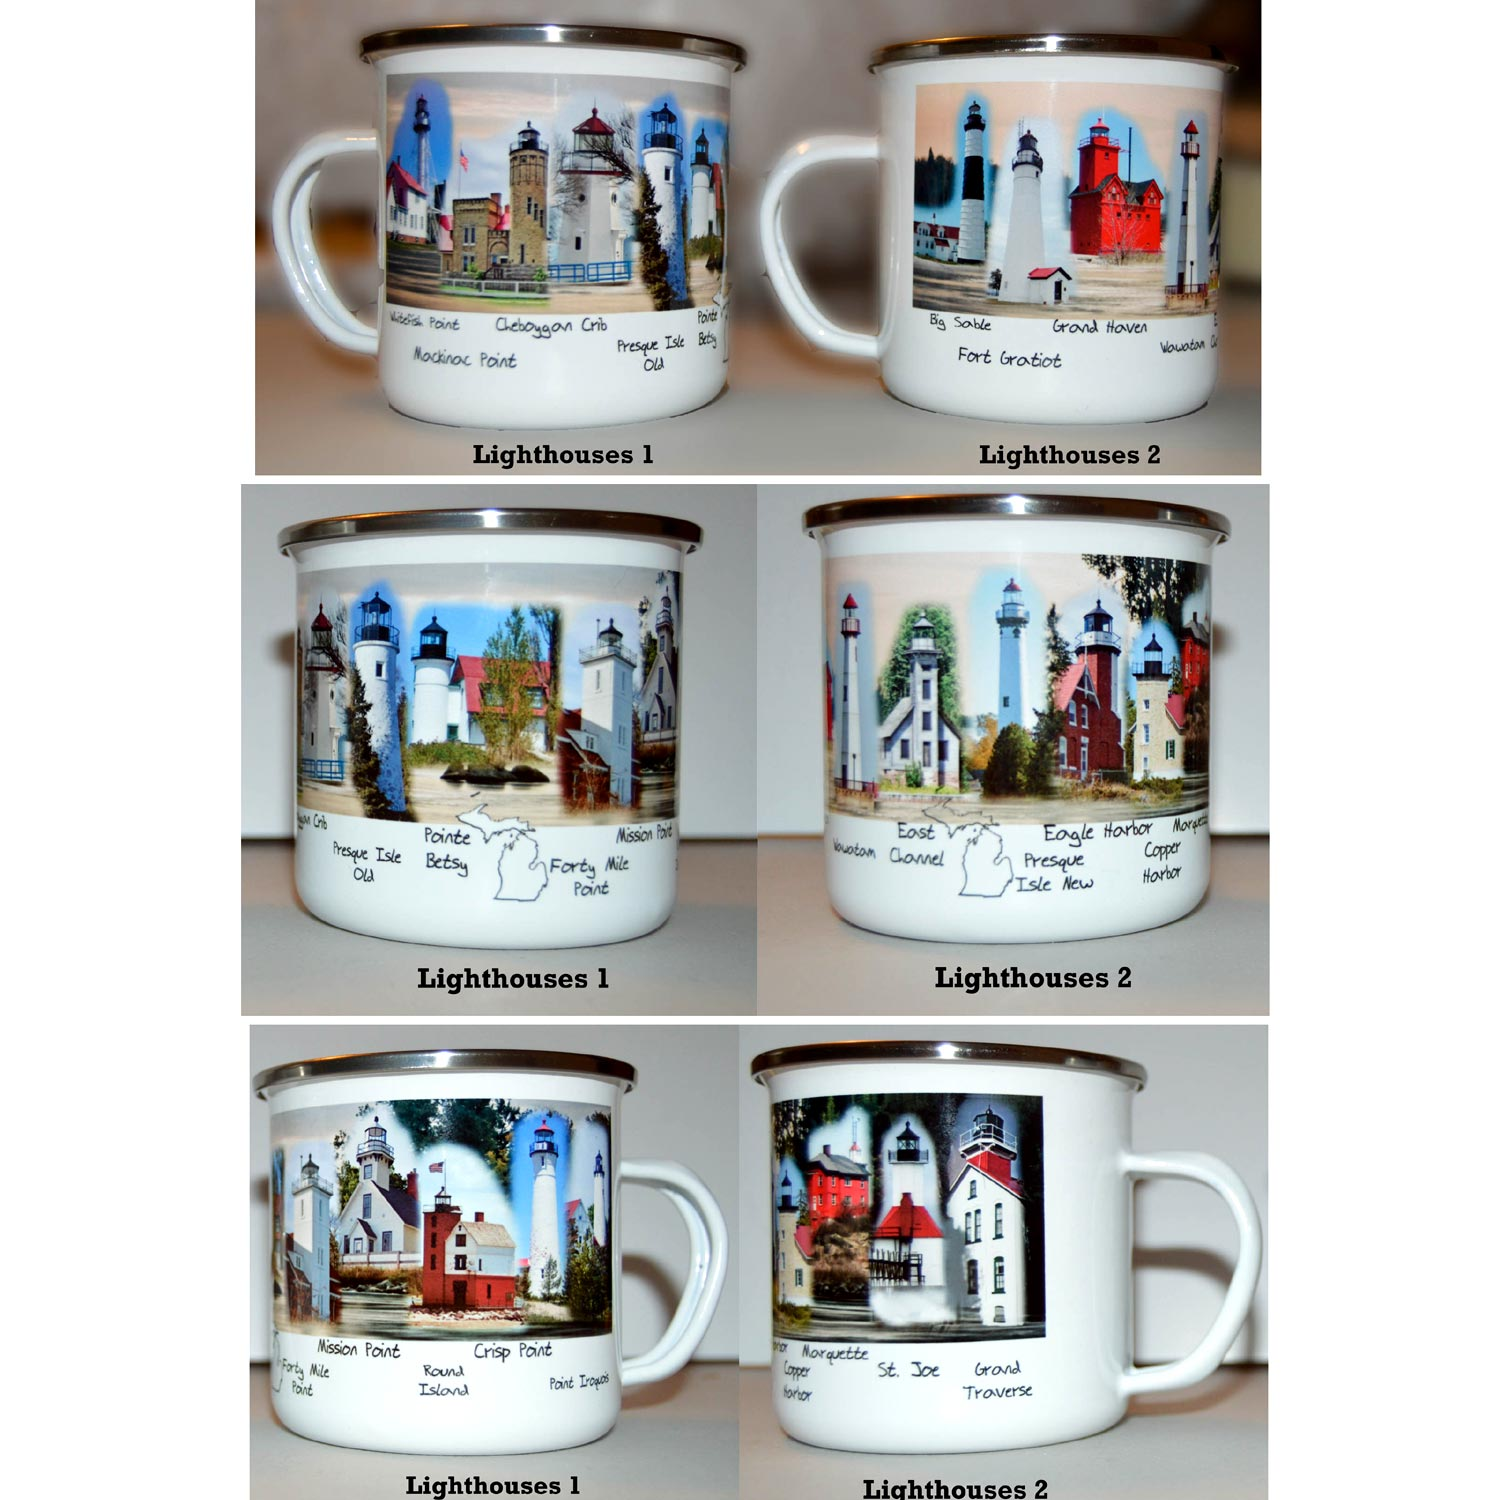 lighthouses camp mugs